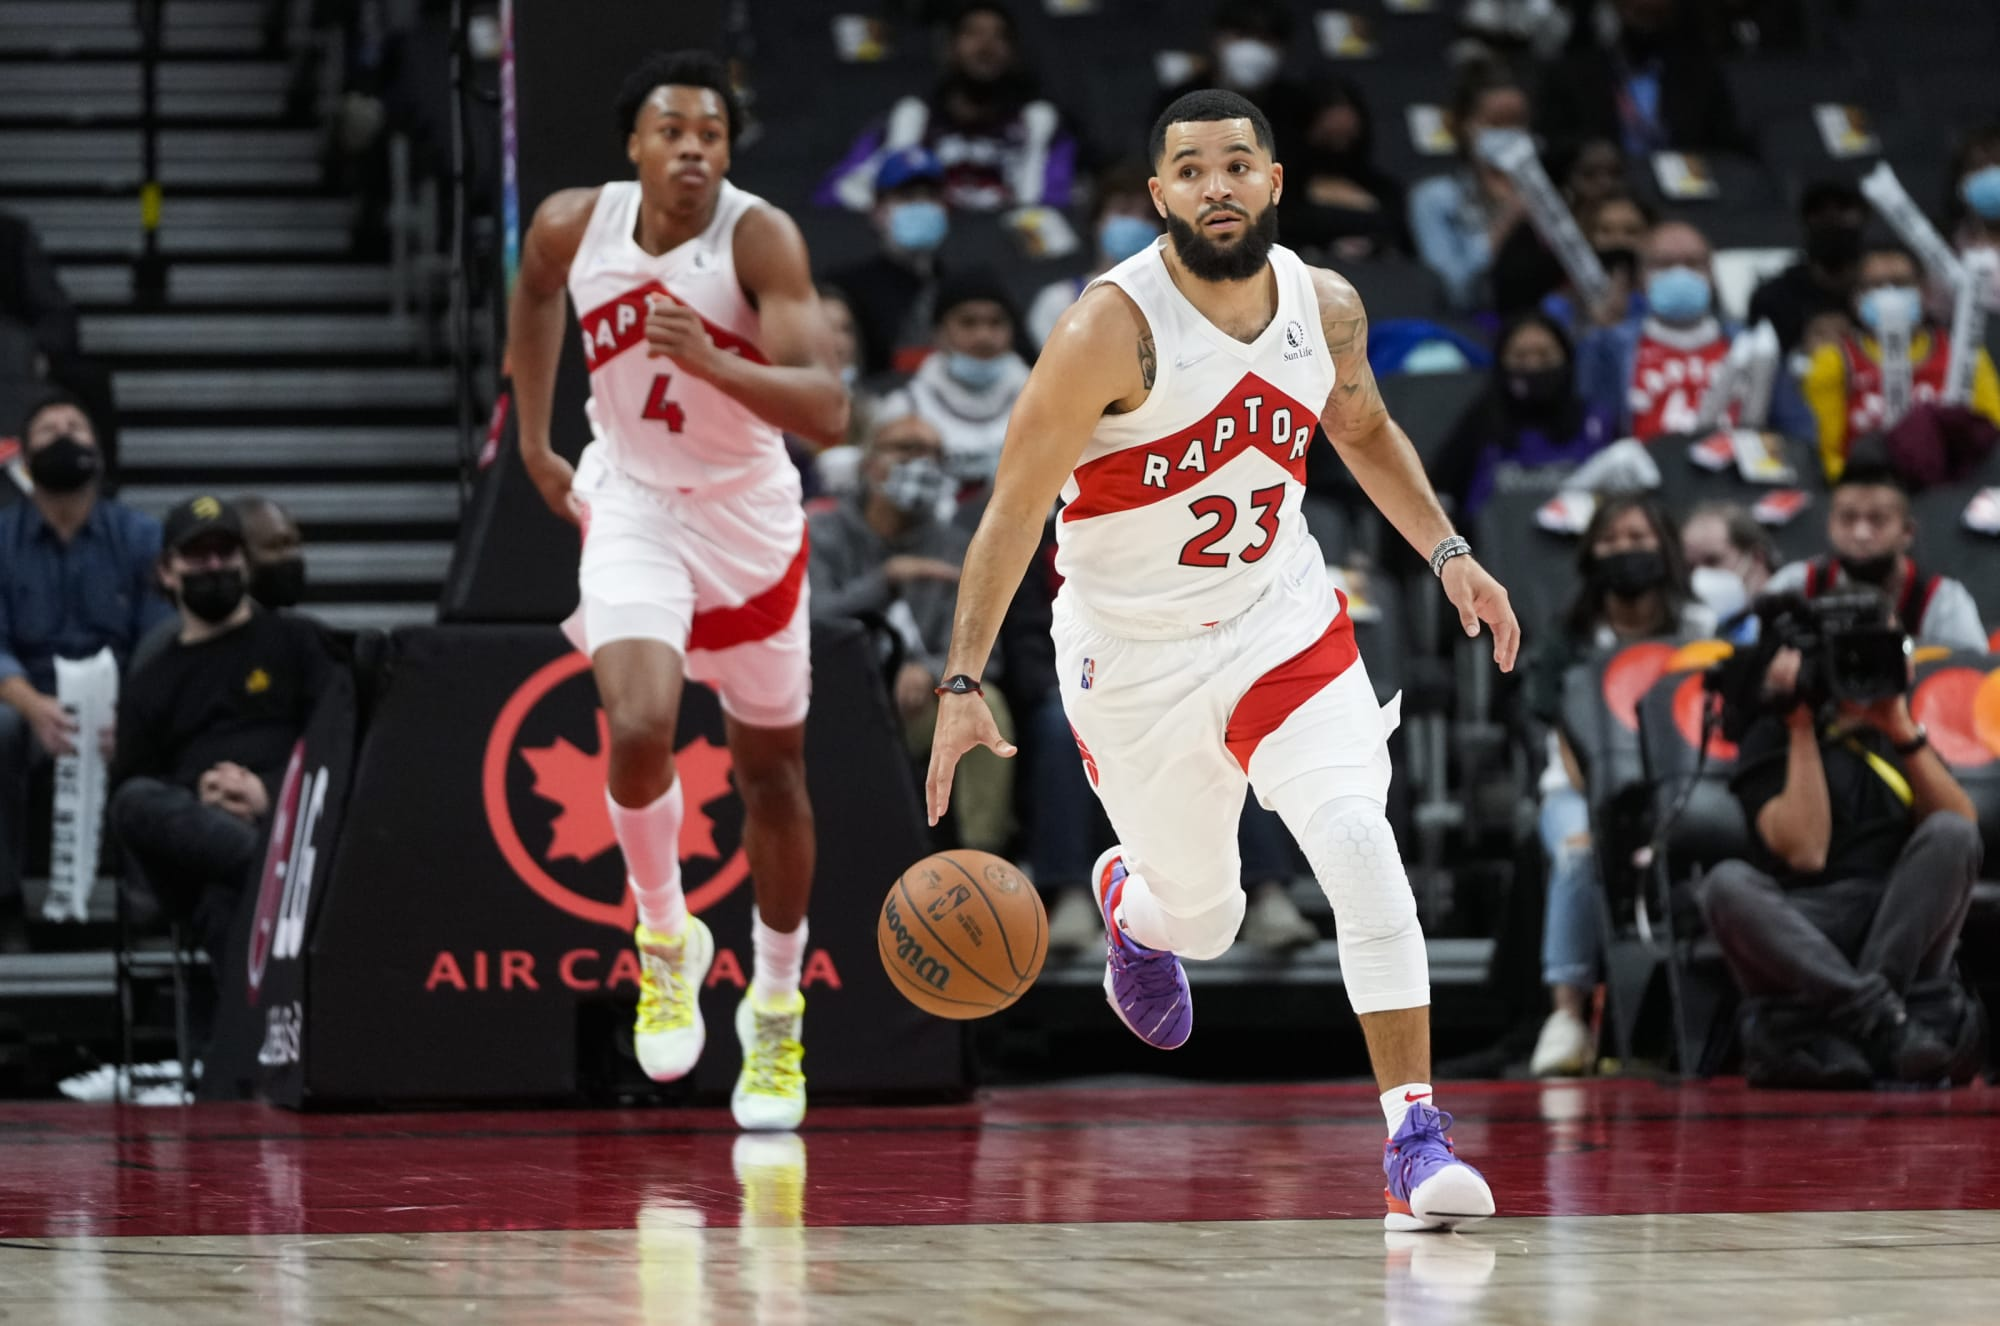 Raptors: Why a play-in berth should be expected this season